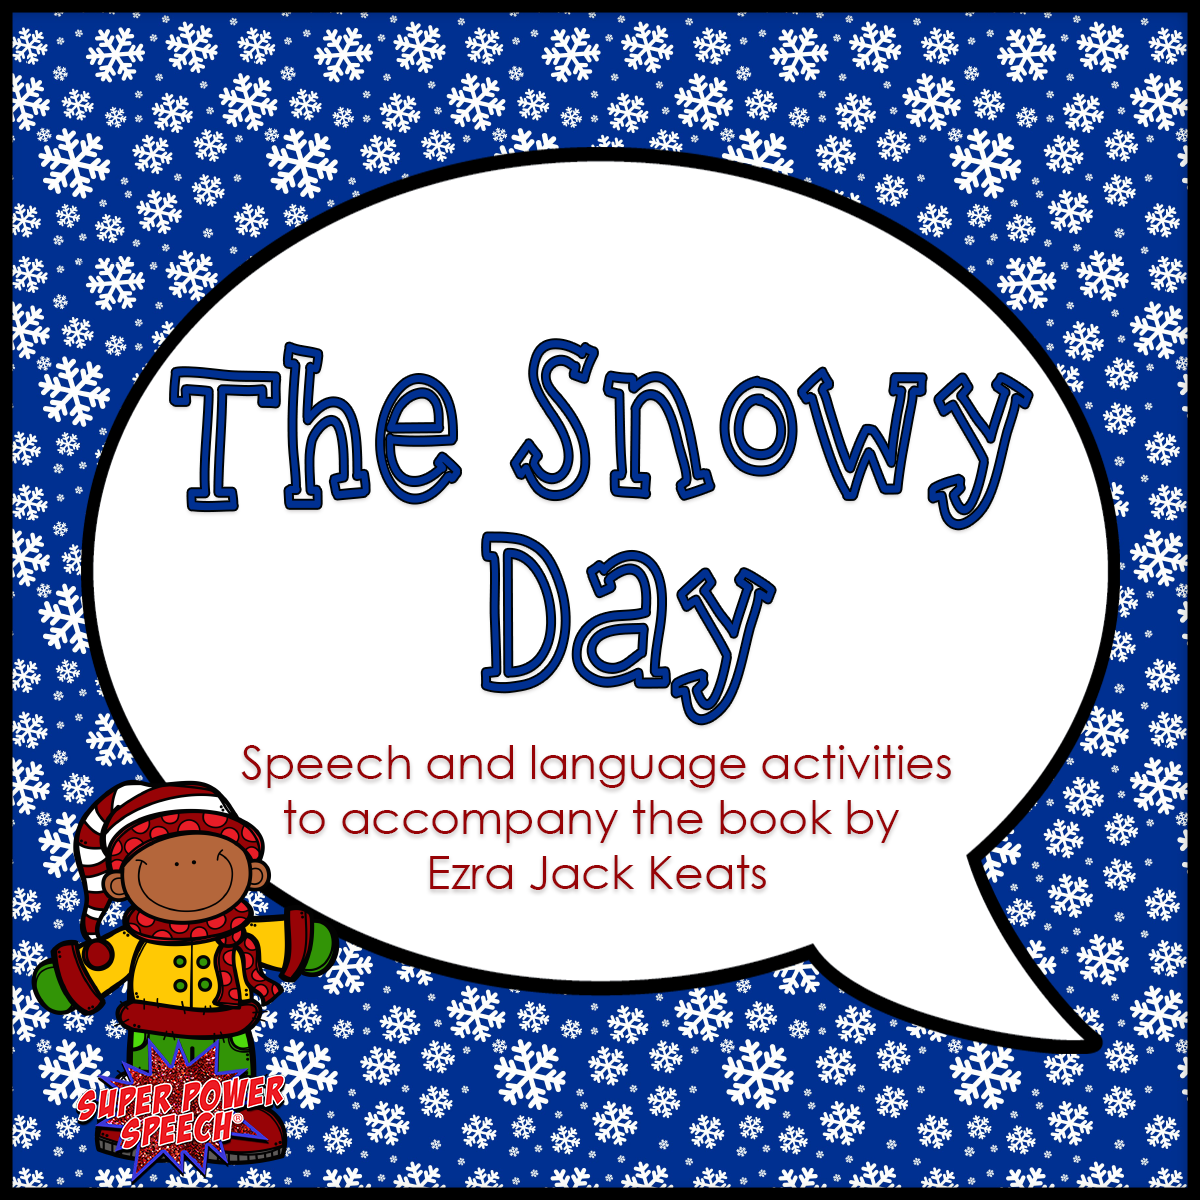 The Snowy Day book companion for speech and language